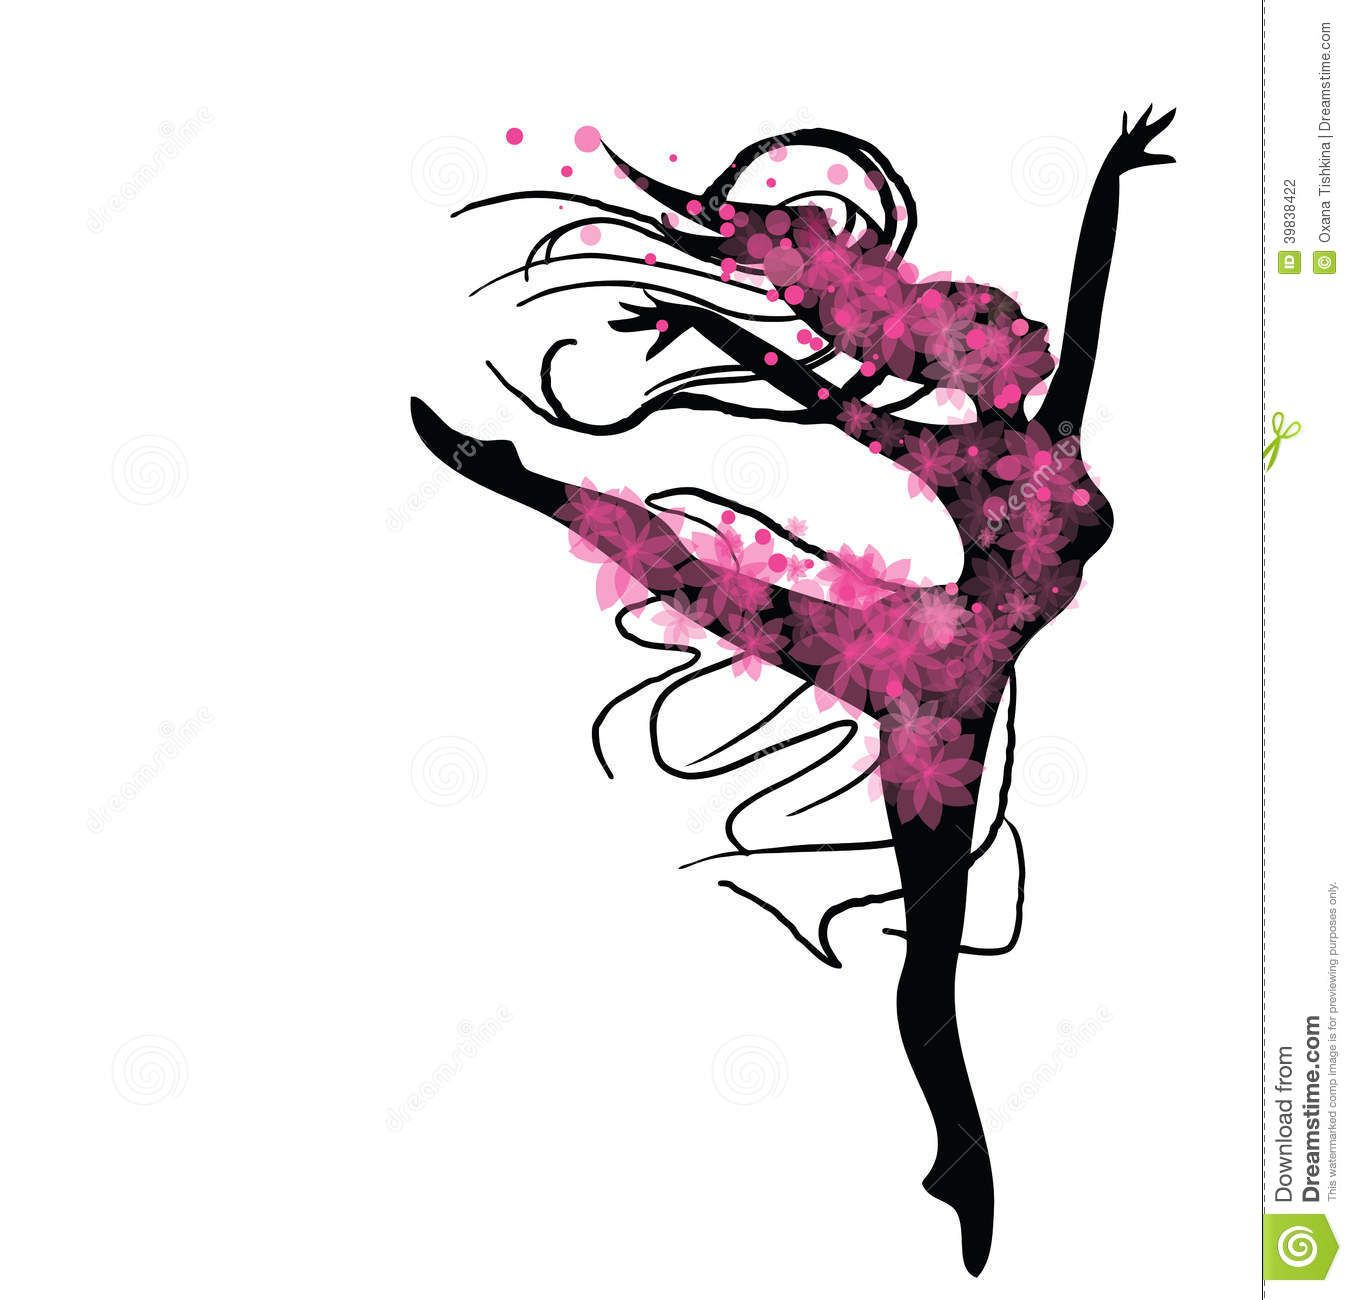 dancing-woman-black-pink-colours-vector-graphic-image ...